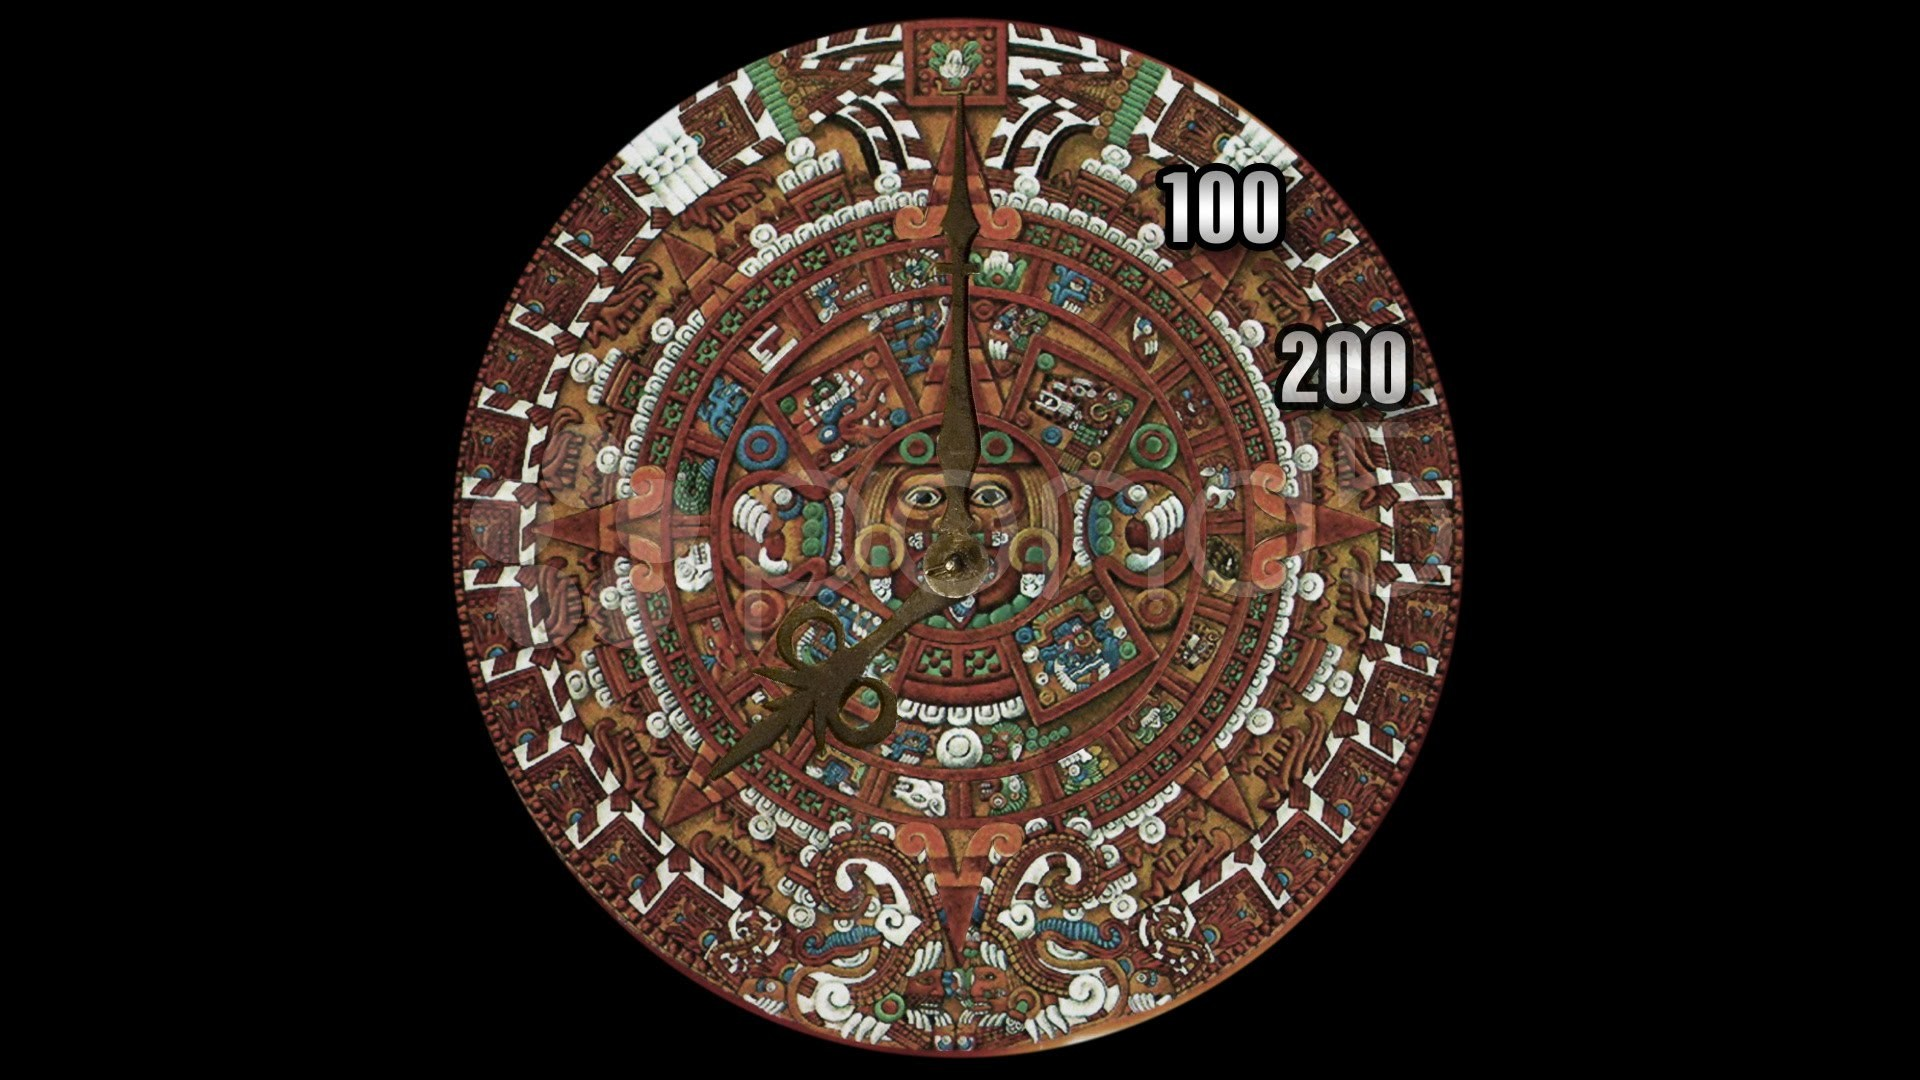 1920x1080 Mayan Calendar Clock Countdown To 2012 (Technically Aztec Not Mayan). Stock  Footage - YouTube